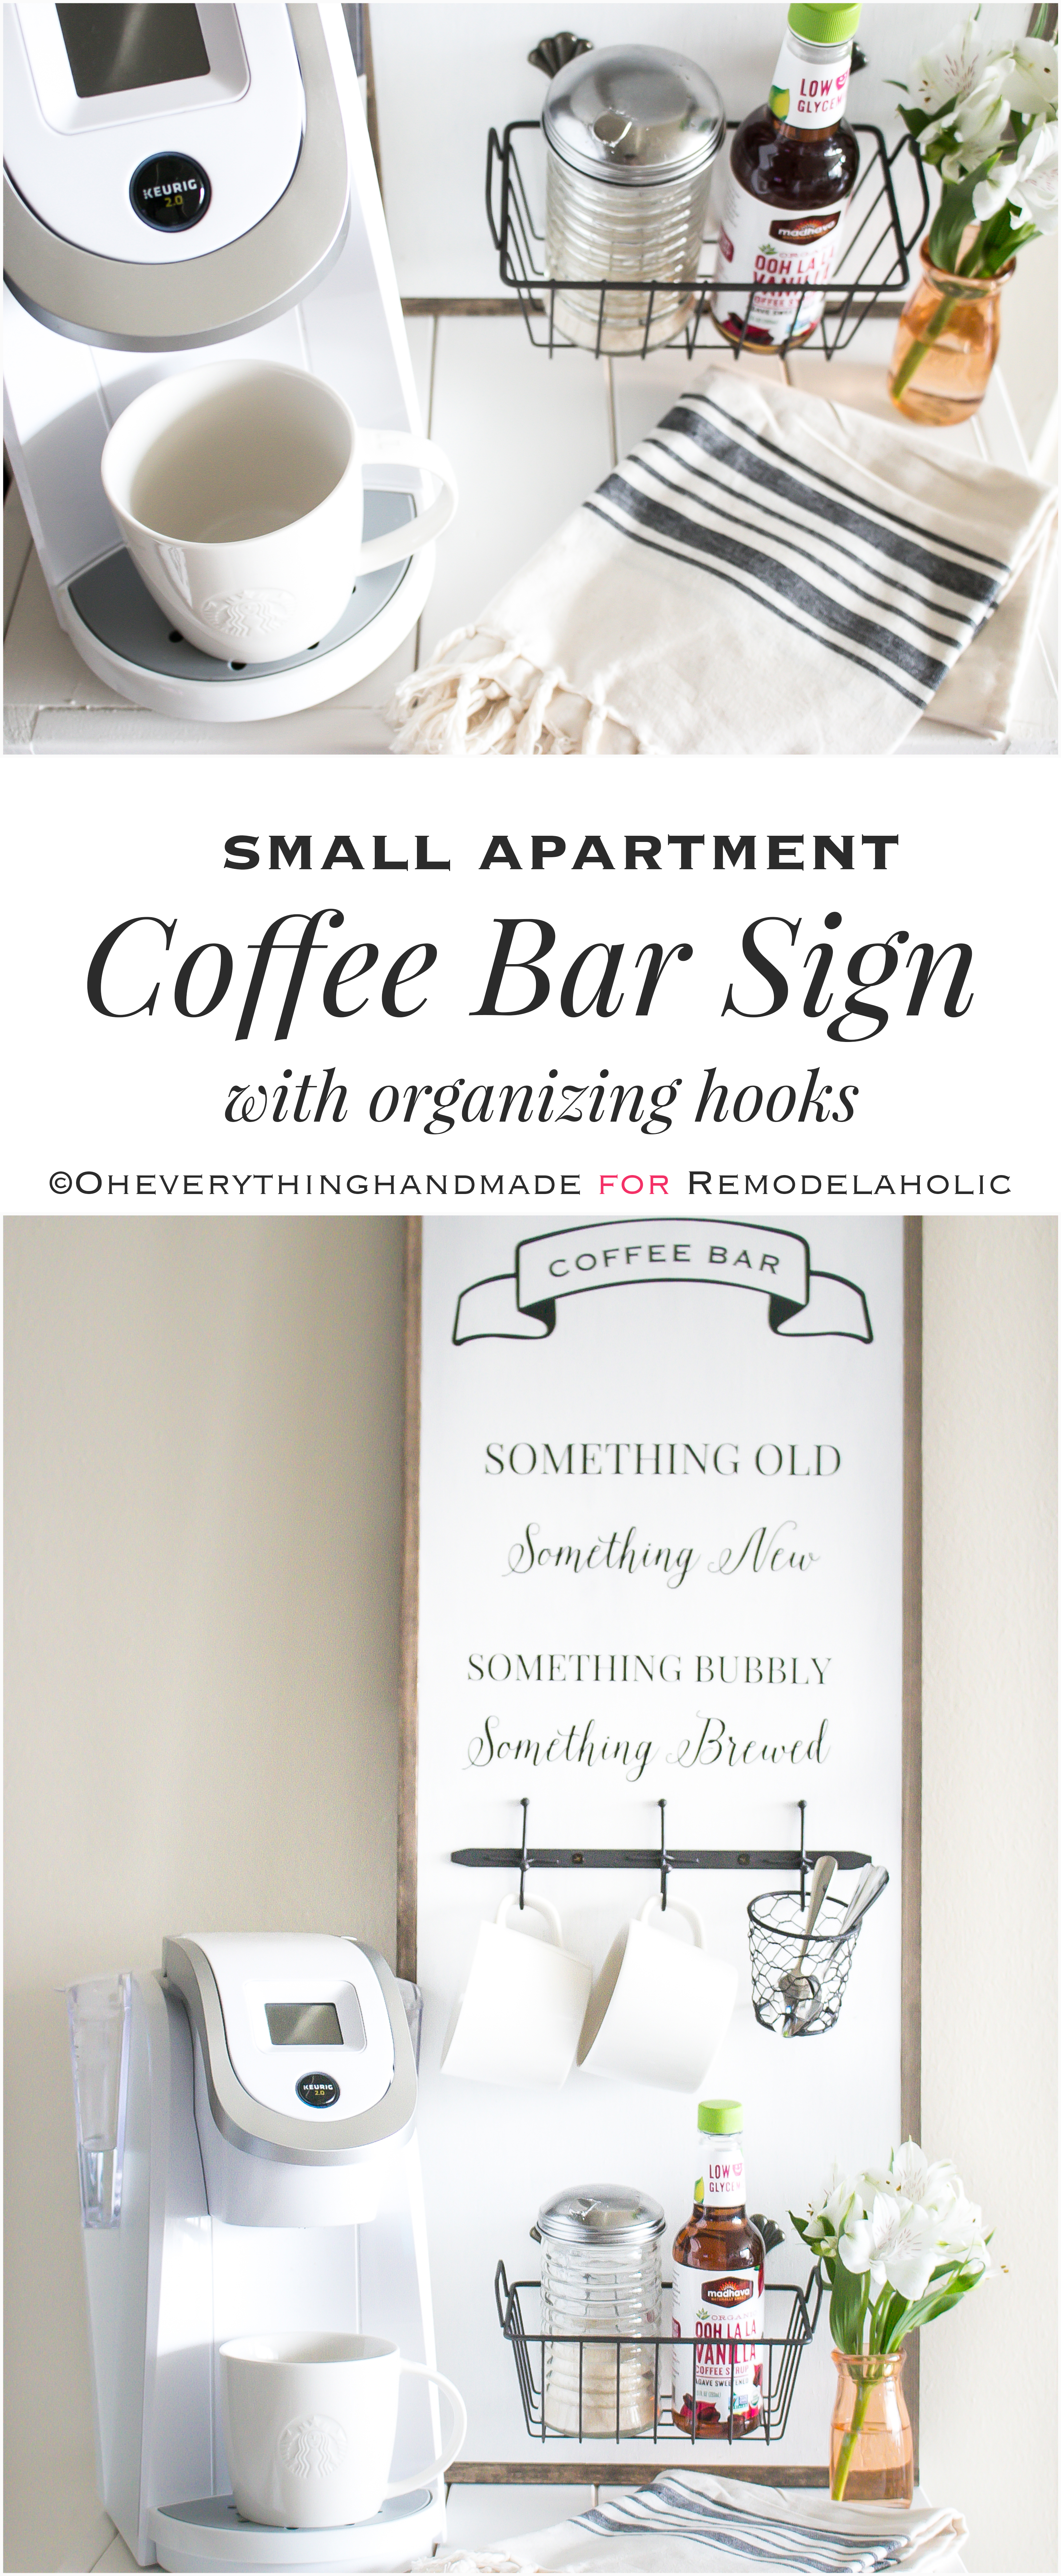 Create a space-saving mini coffee bar right in your small home or apartment with this easy and chic DIY coffee bar sign and organizer.